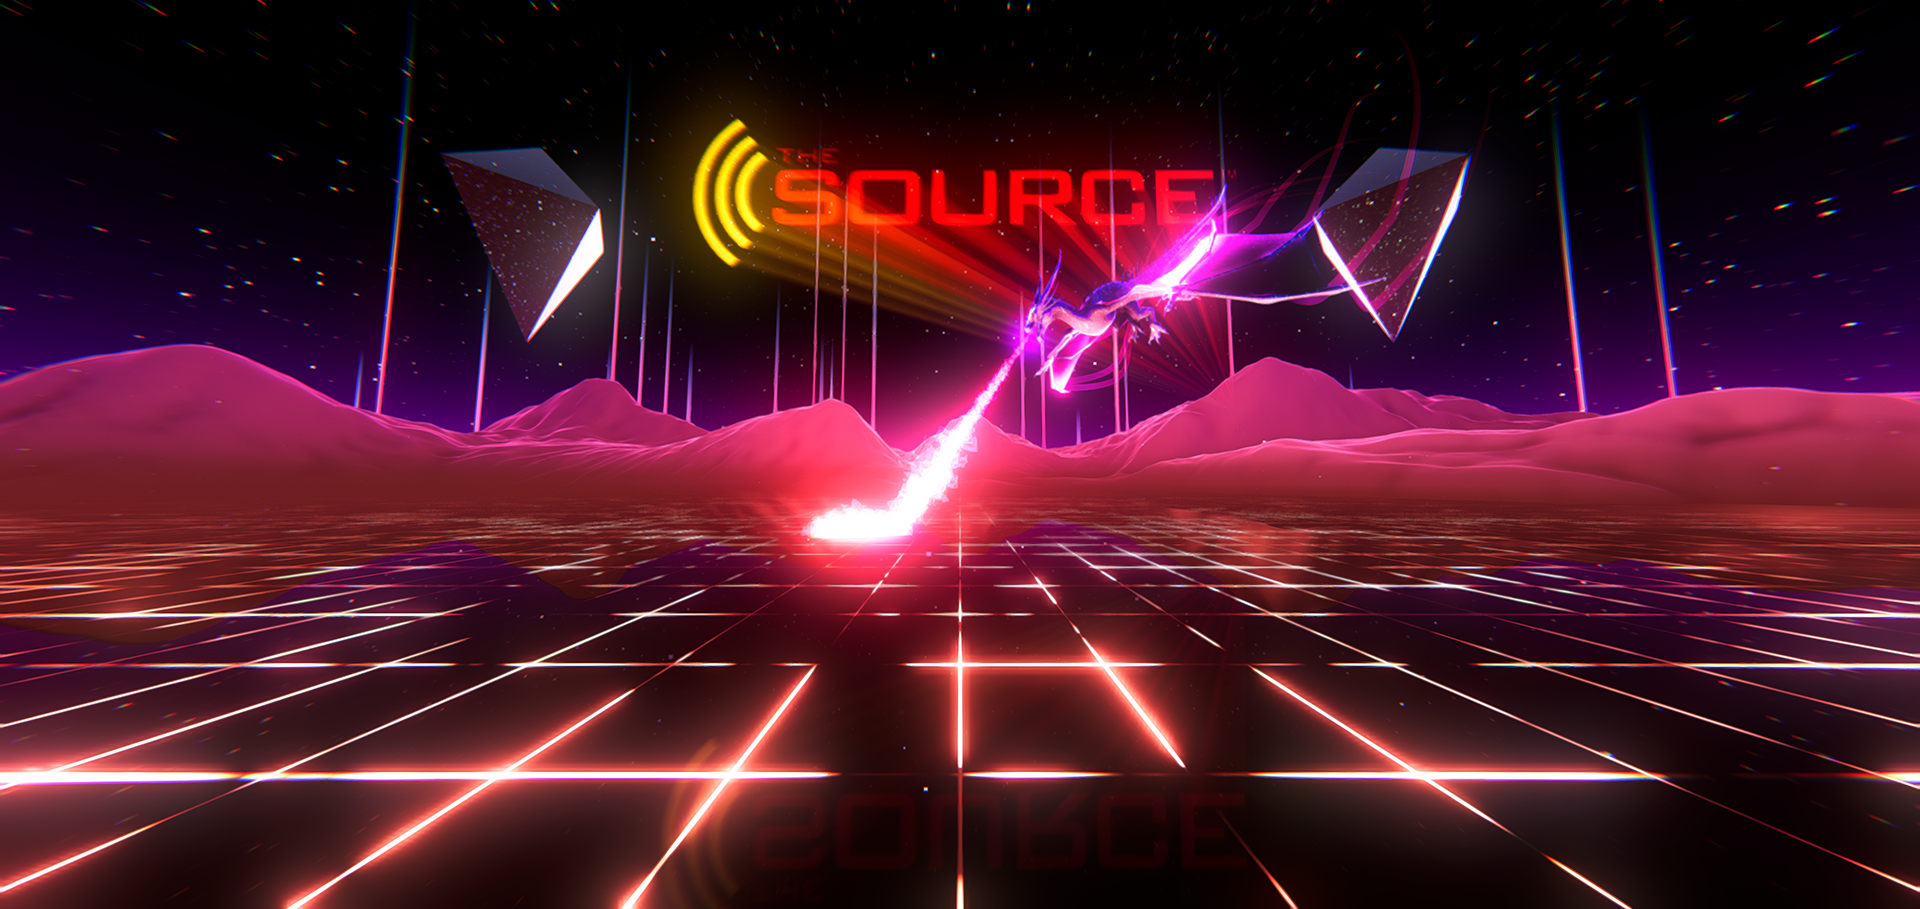 Occupied VR @ The Source